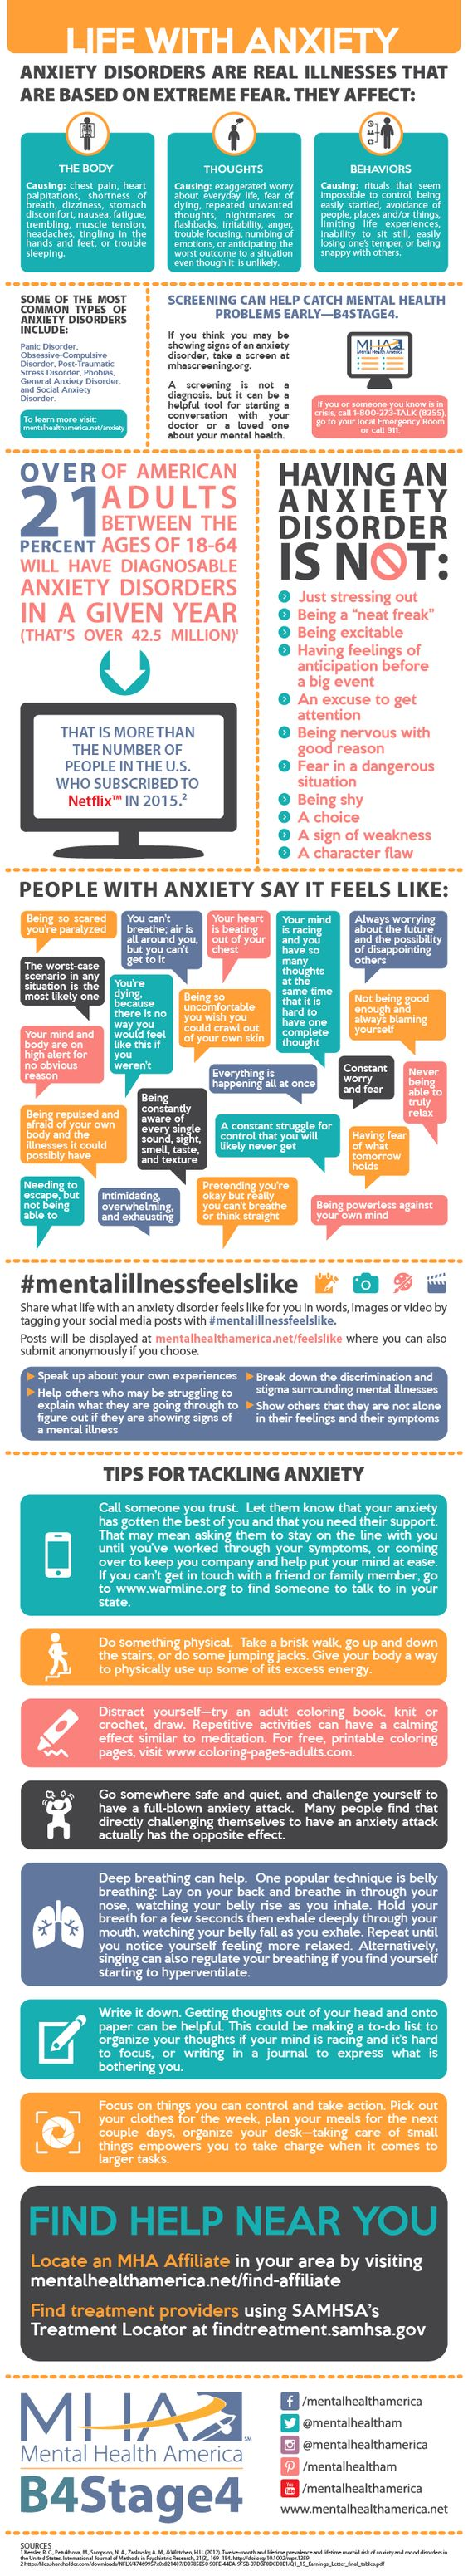 For #MHMonth2016, @MentalHealthAm created an excellent infographic on #Anxiety. #MentalHealthMatters